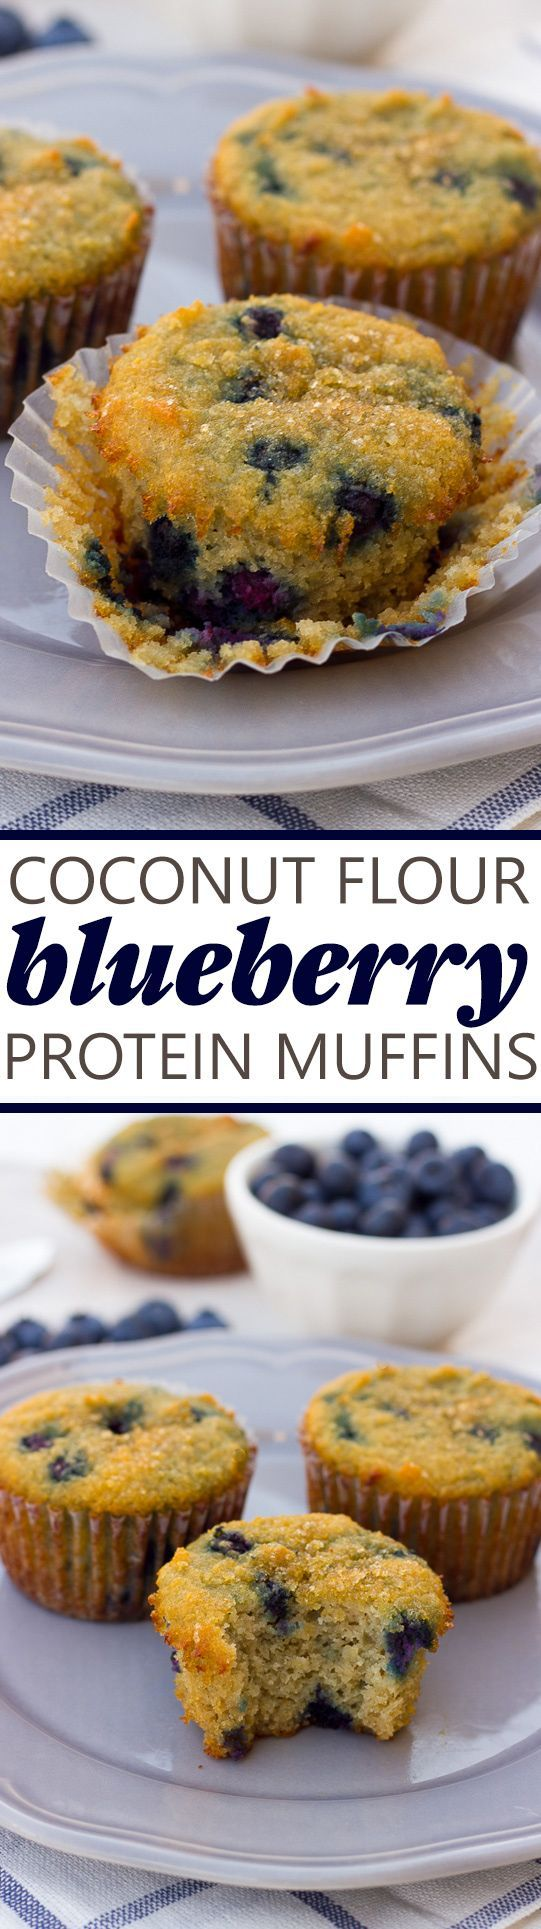 Coconut Flour Blueberry Protein Muffins! Easy, gluten-free, paleo and protein-packed muffins for busy mornings!